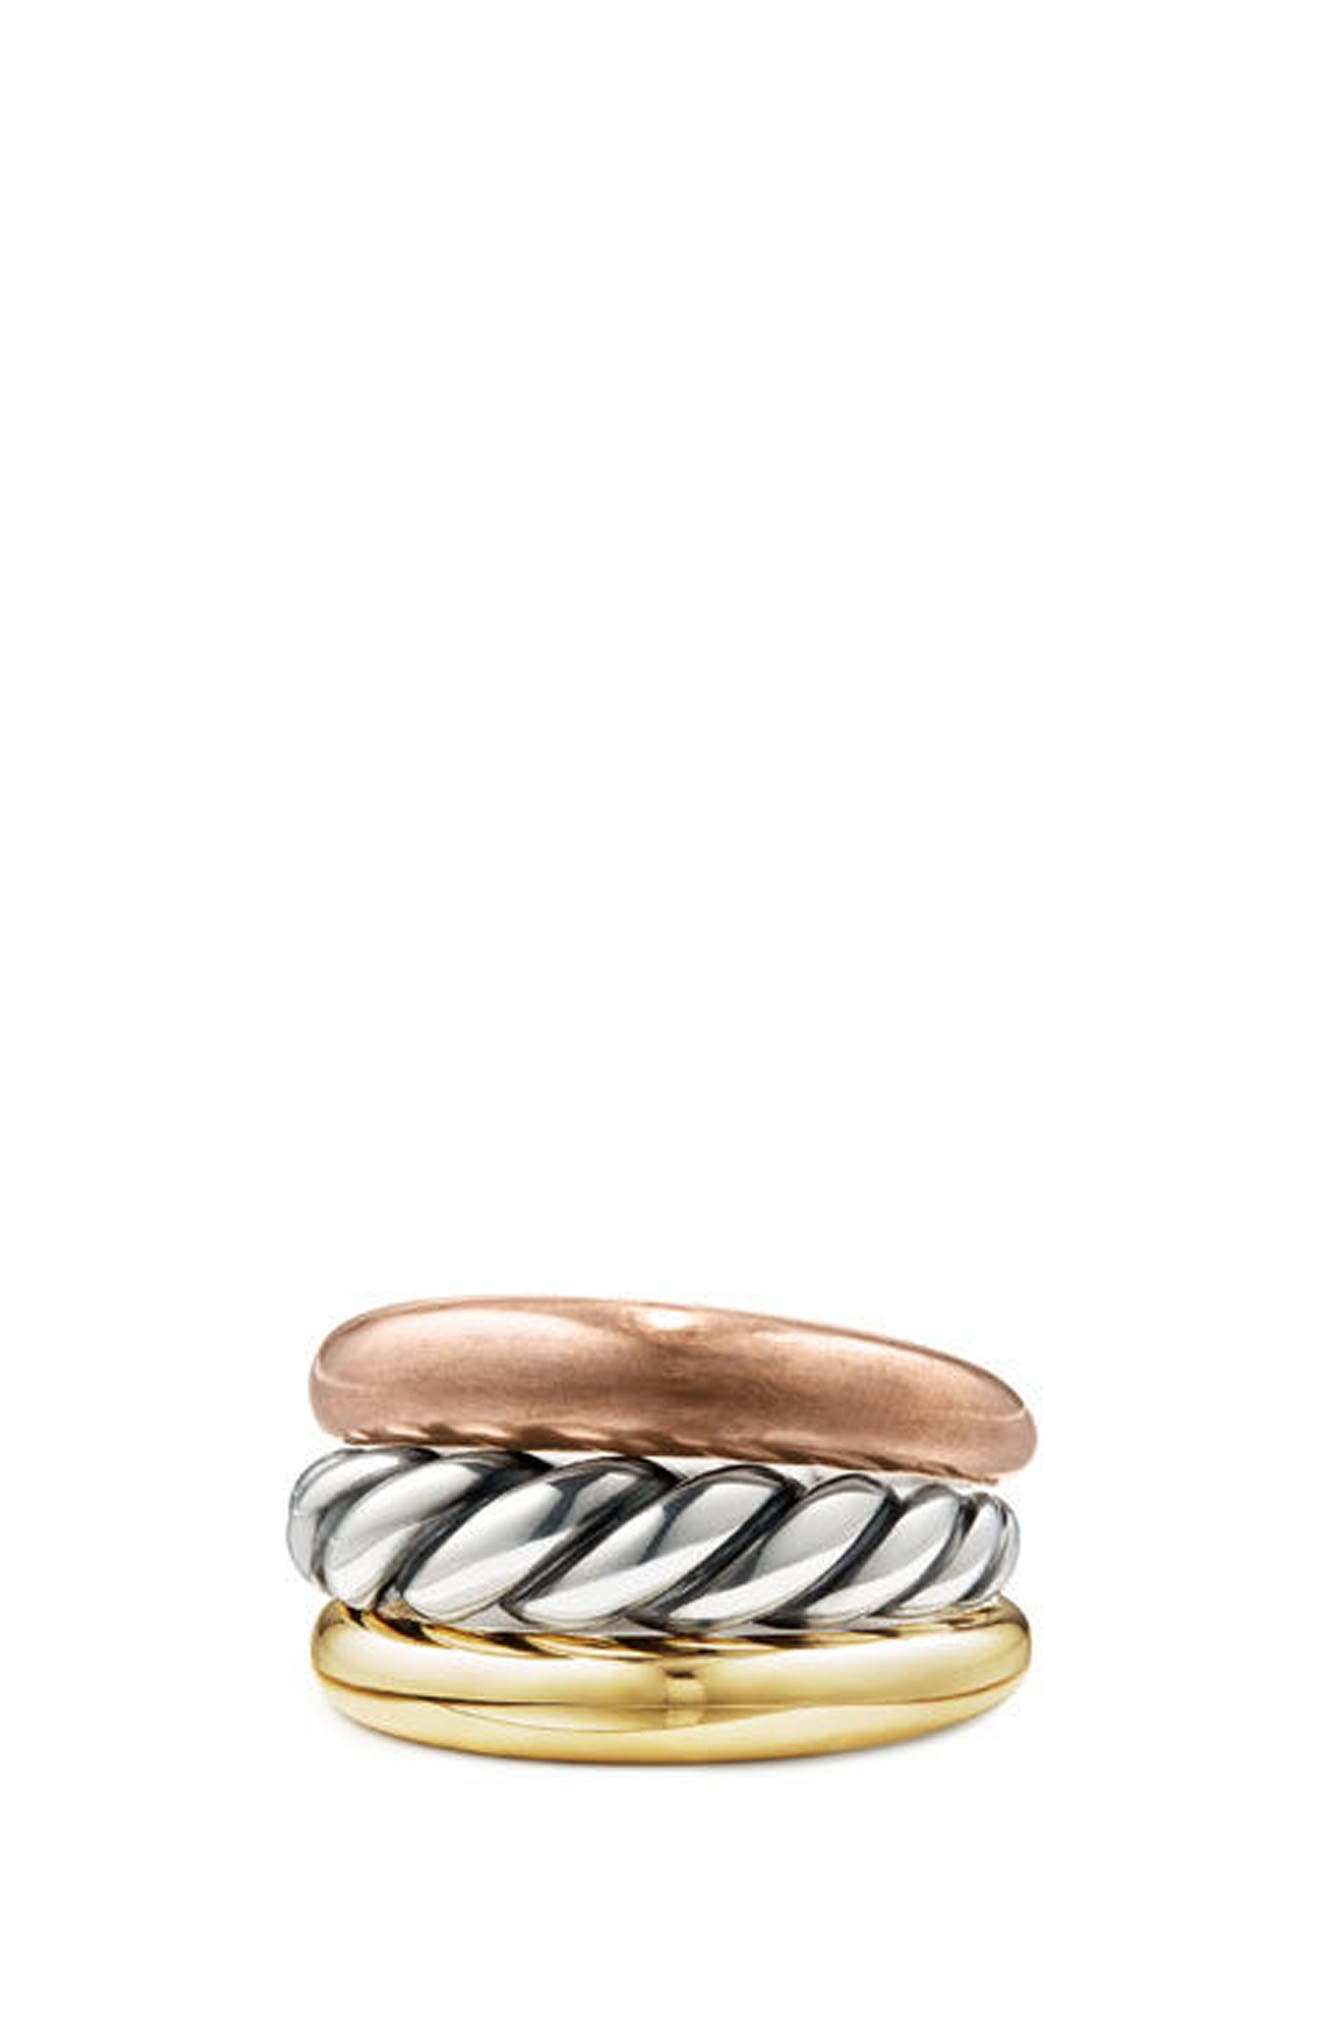 DAVID YURMAN Pure Form Mixed Metal Three-Row Ring with Bronze, Silver & Brass, Main, color, SILVER